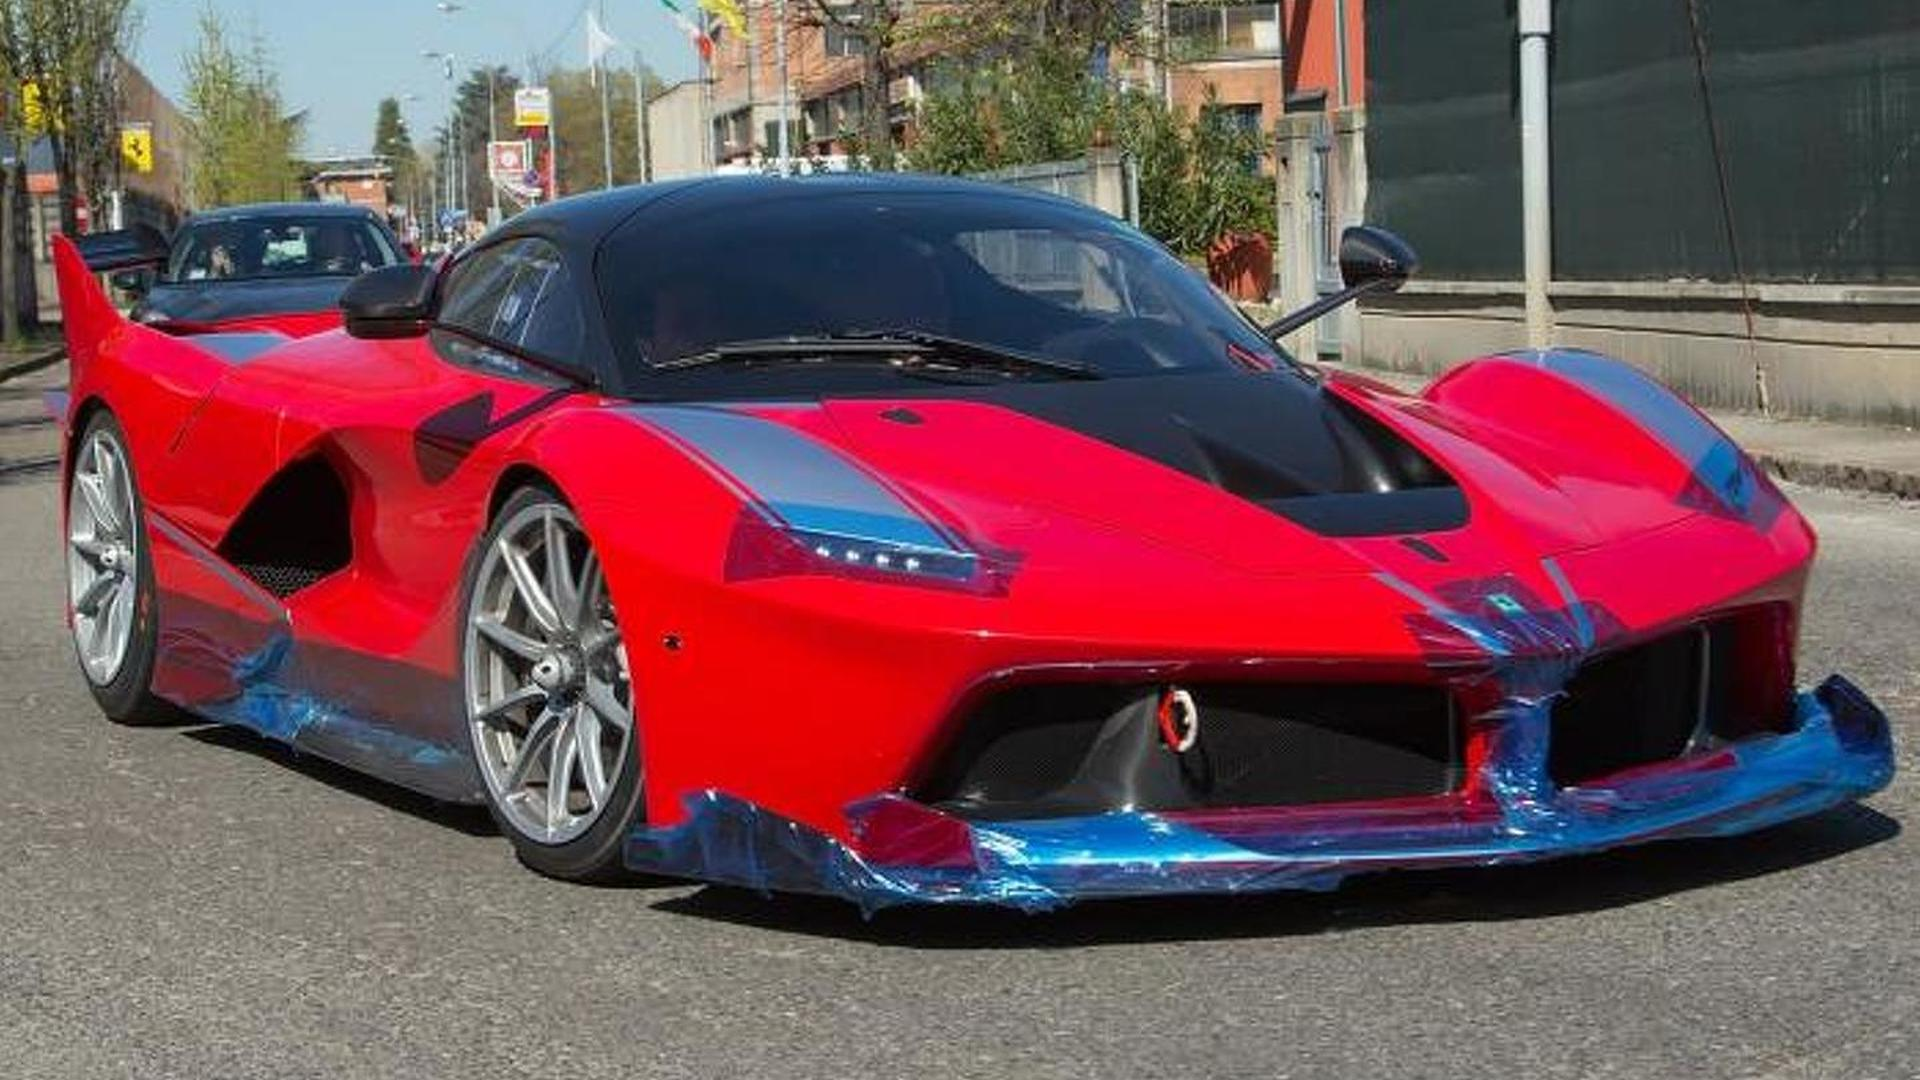 Ferrari FXX K photographed up close and personal on public road in Maranello